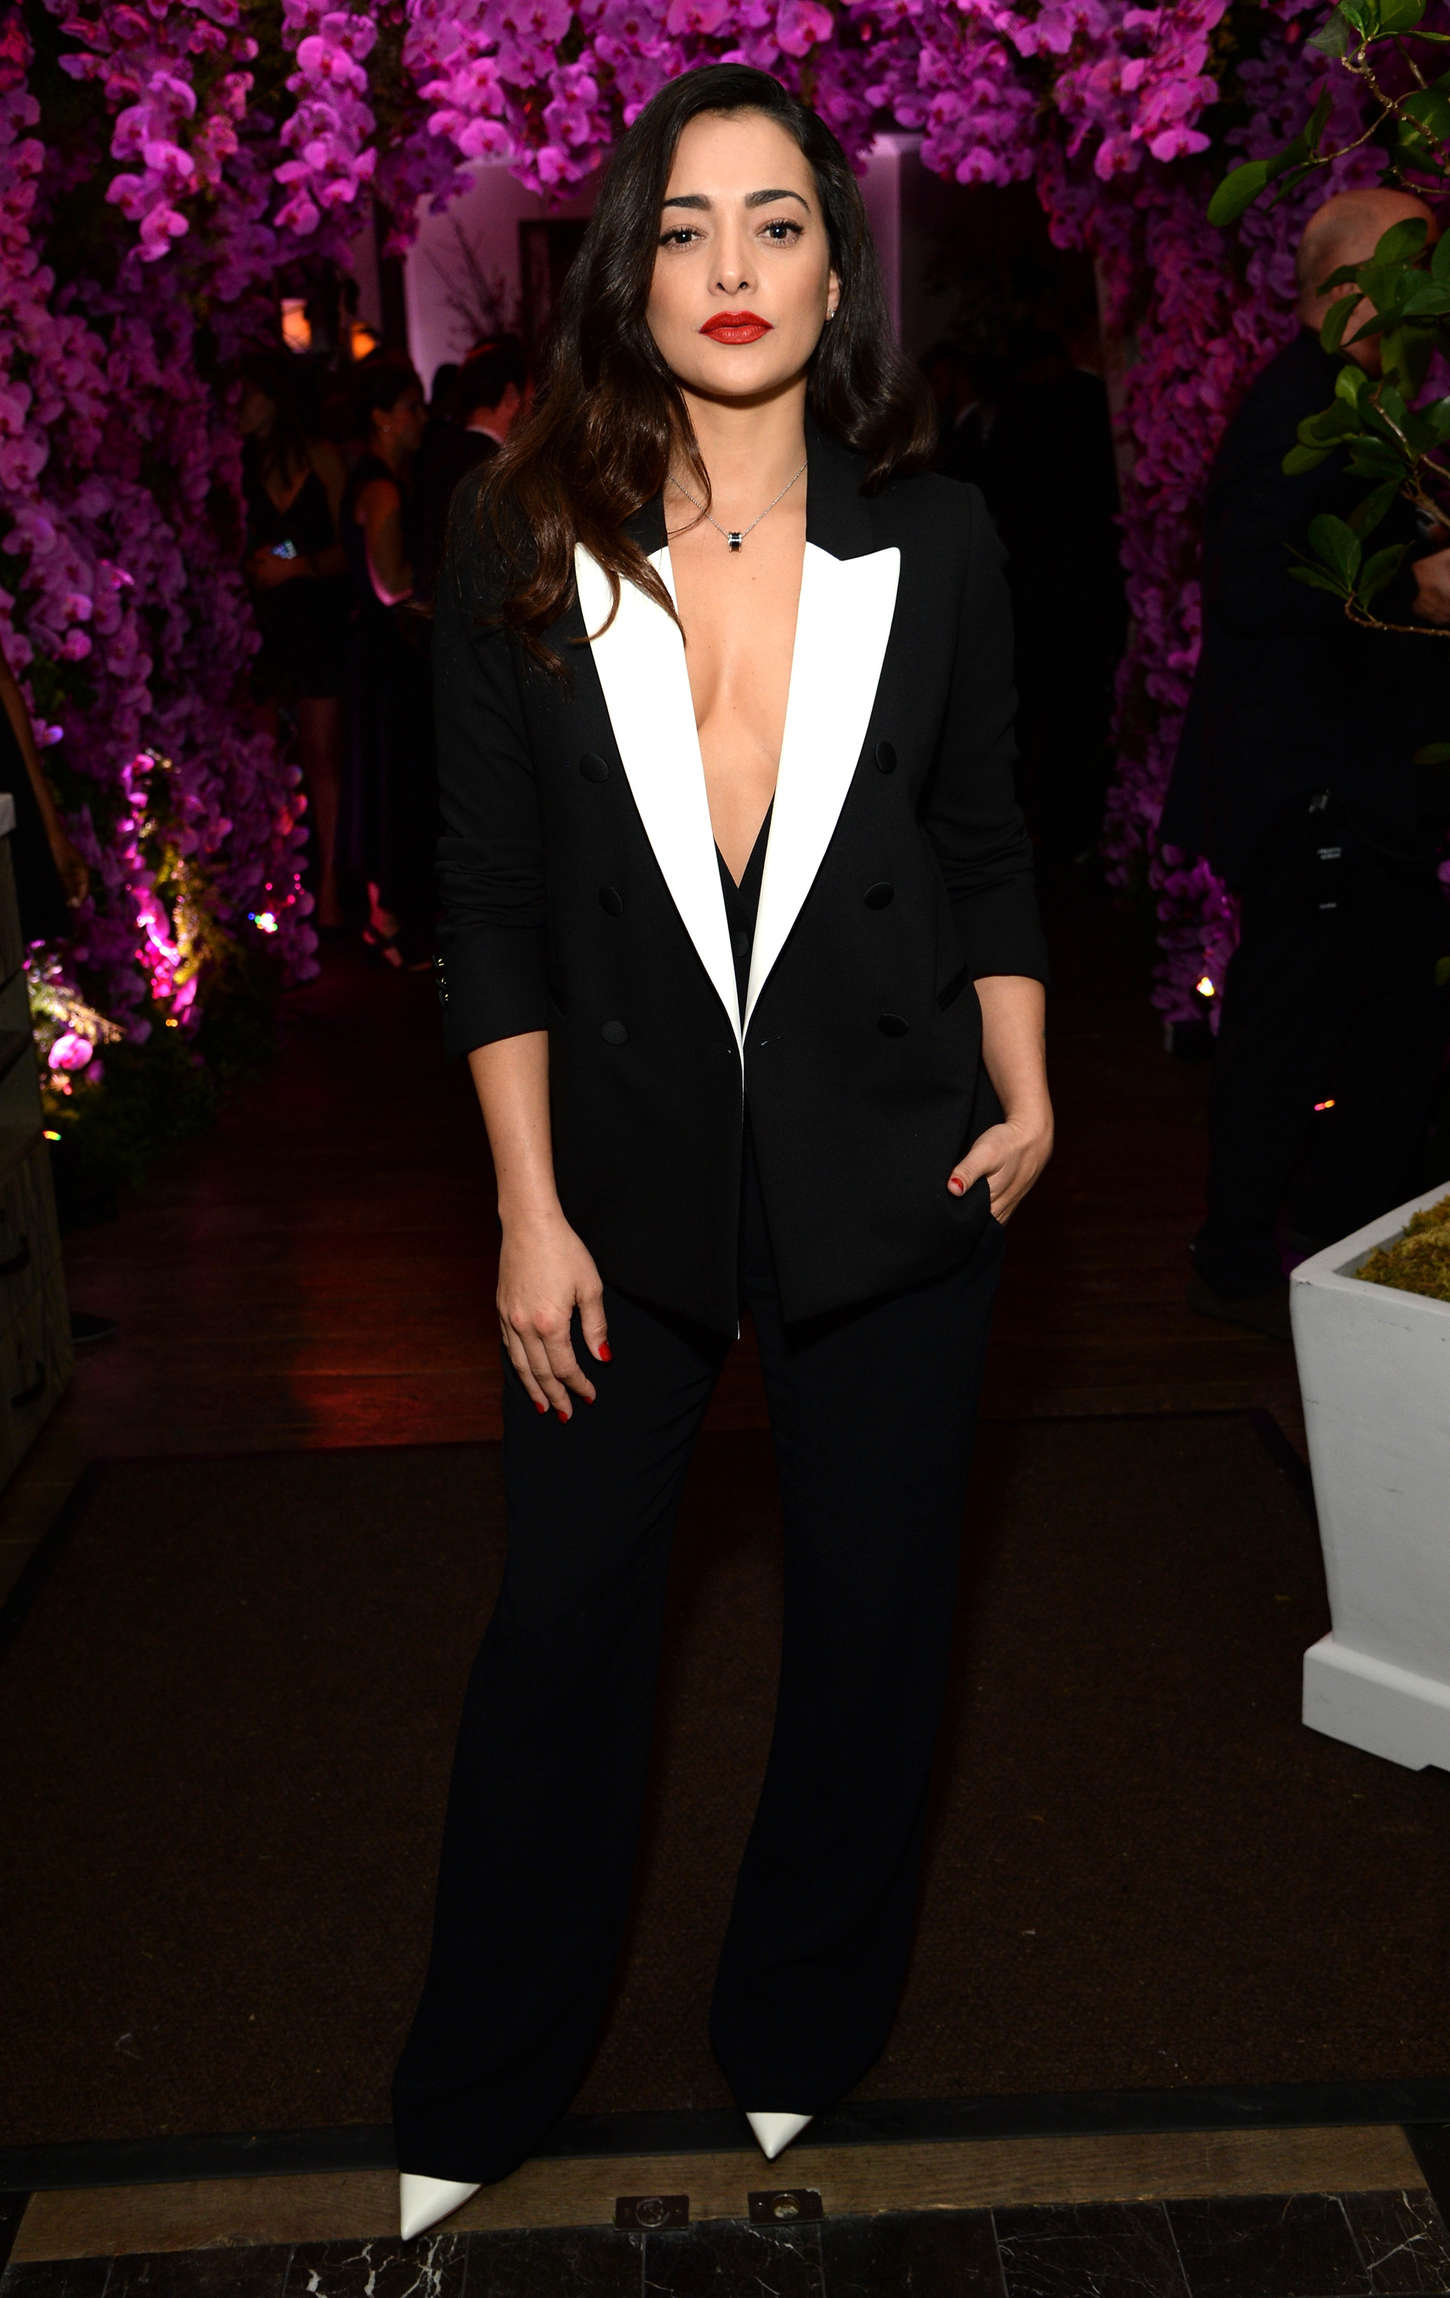 Natalie Martinez BVLGARI Save The Children STOP THINK GIVE Pre-Oscar Event in Beverly